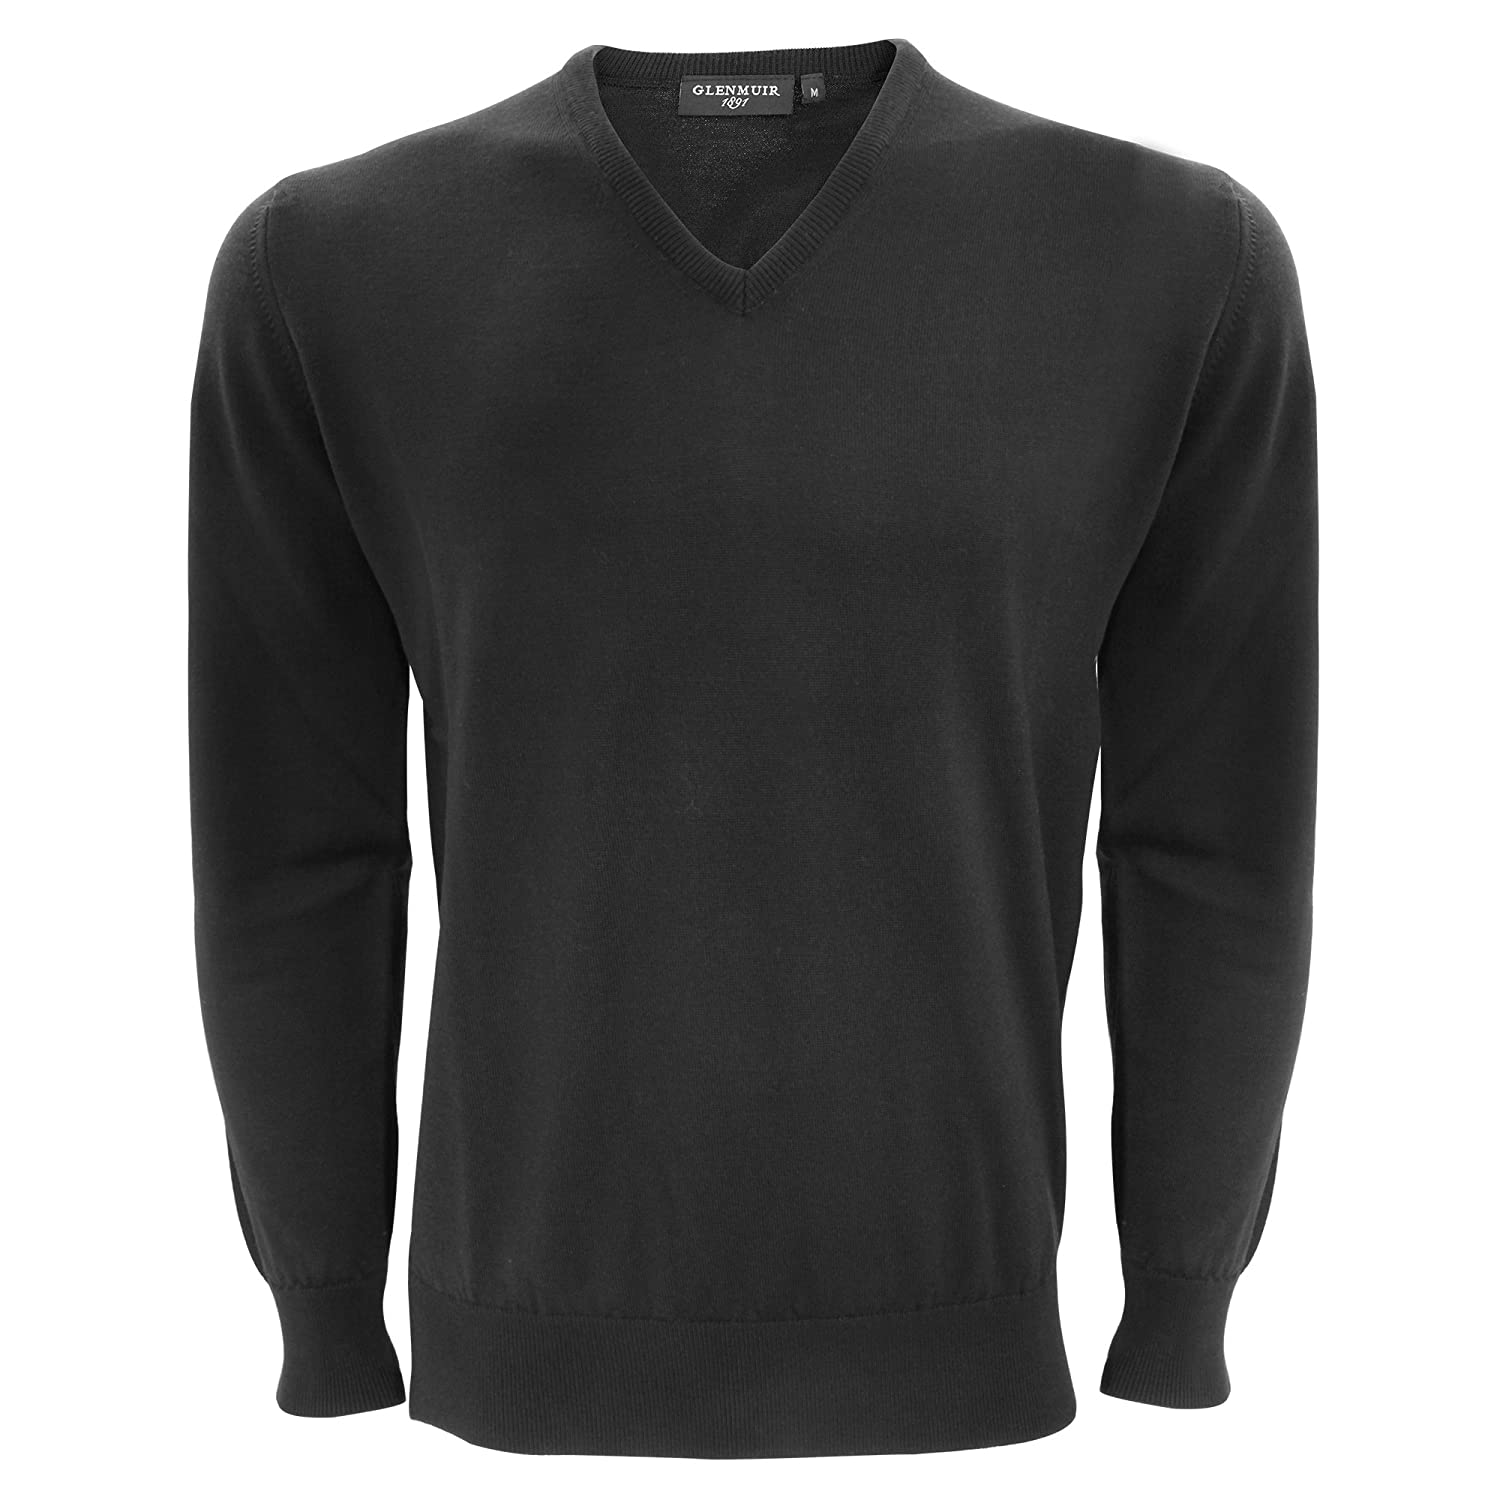 Glenmuir Mens V-Neck Merino Wool Sweater/Sweatshirt